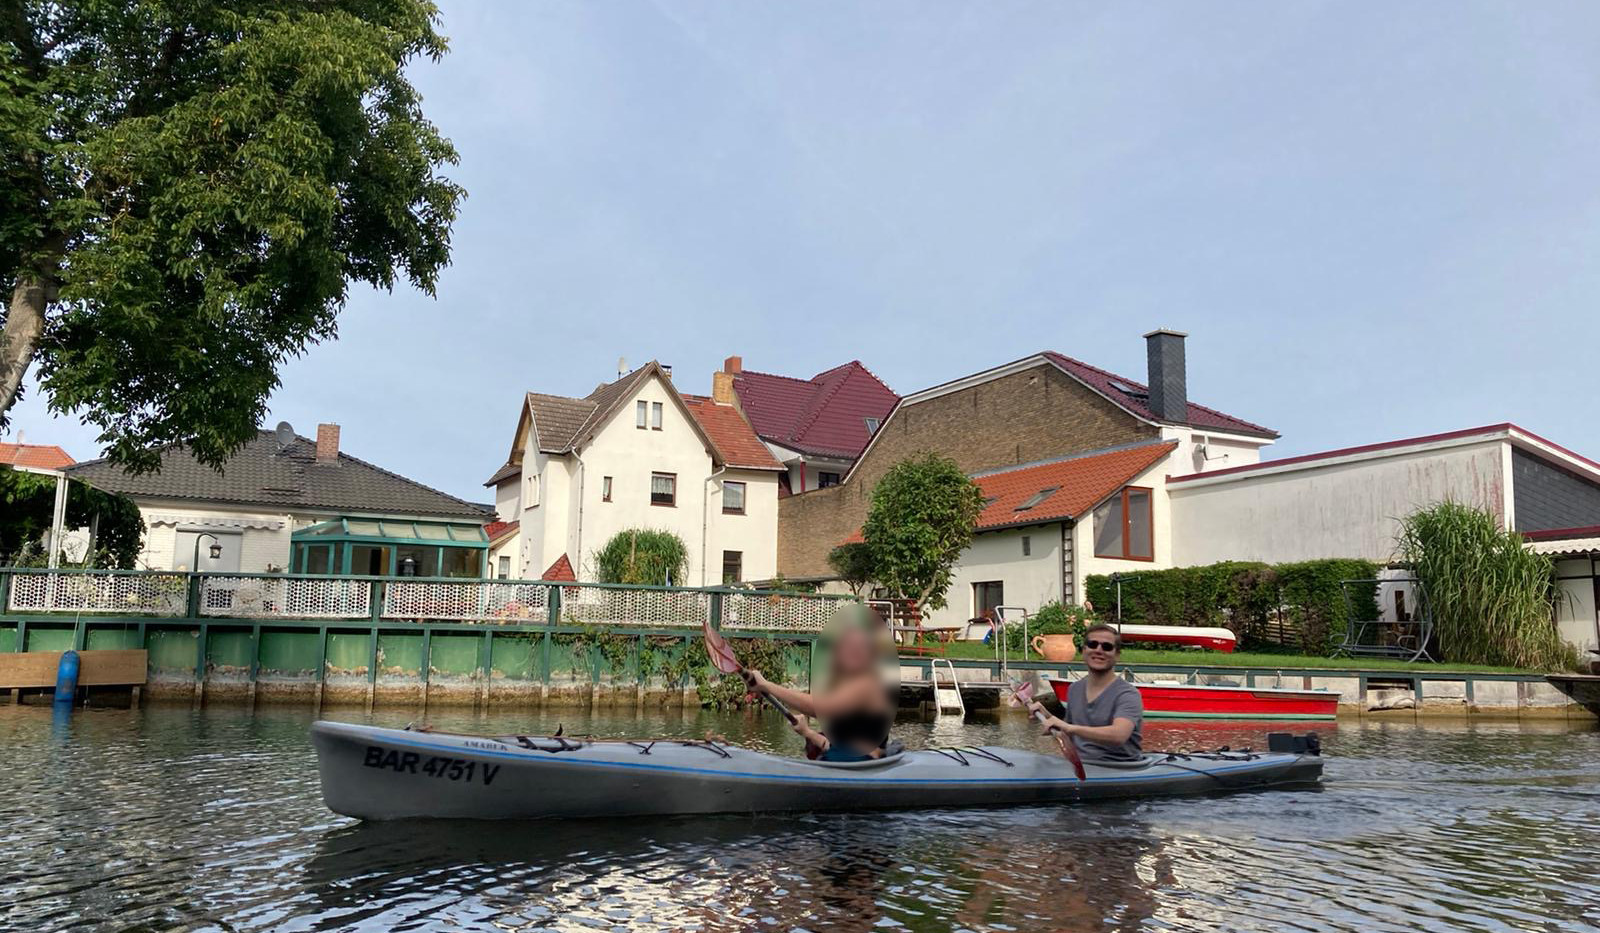 Enjoying the canals of Fürstenberg